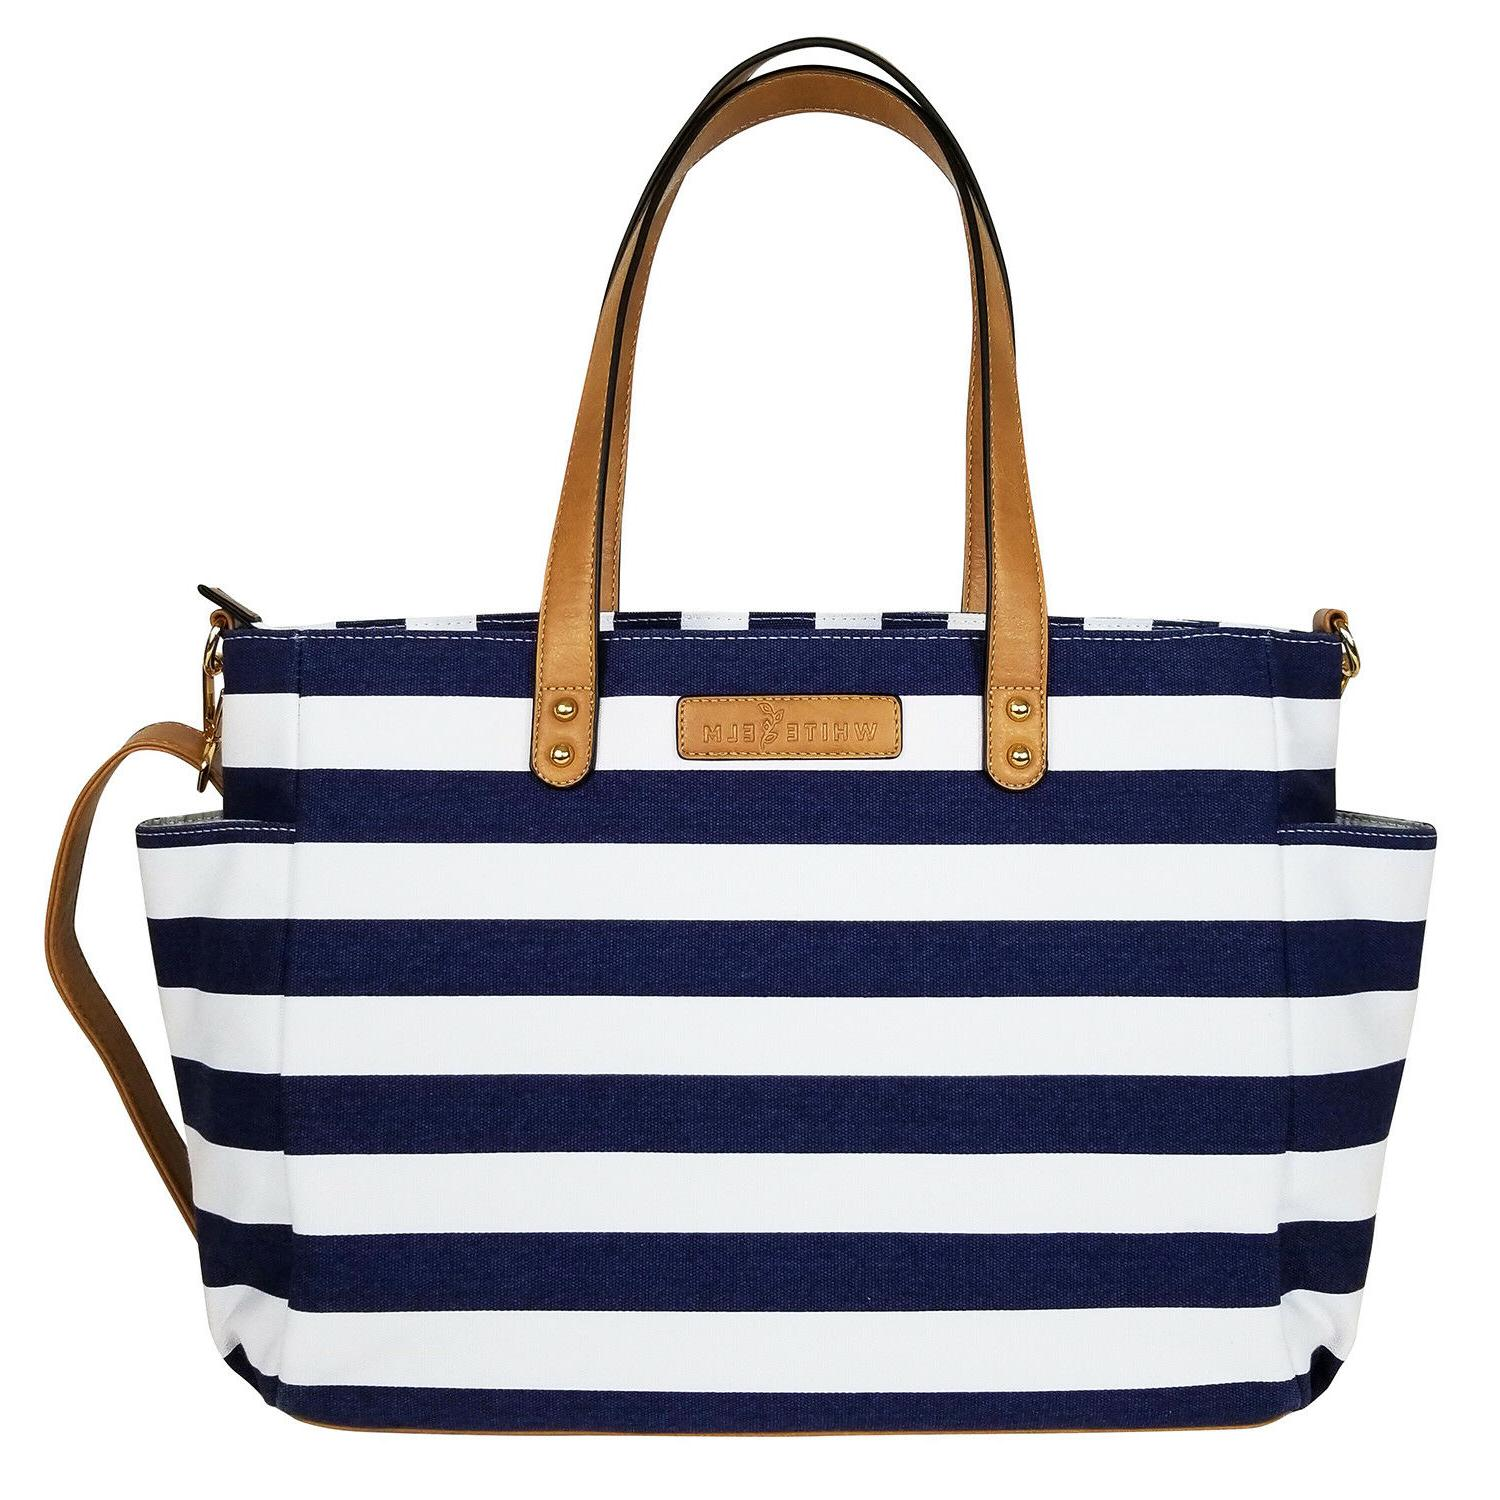 the aquila tote bag by navy blue